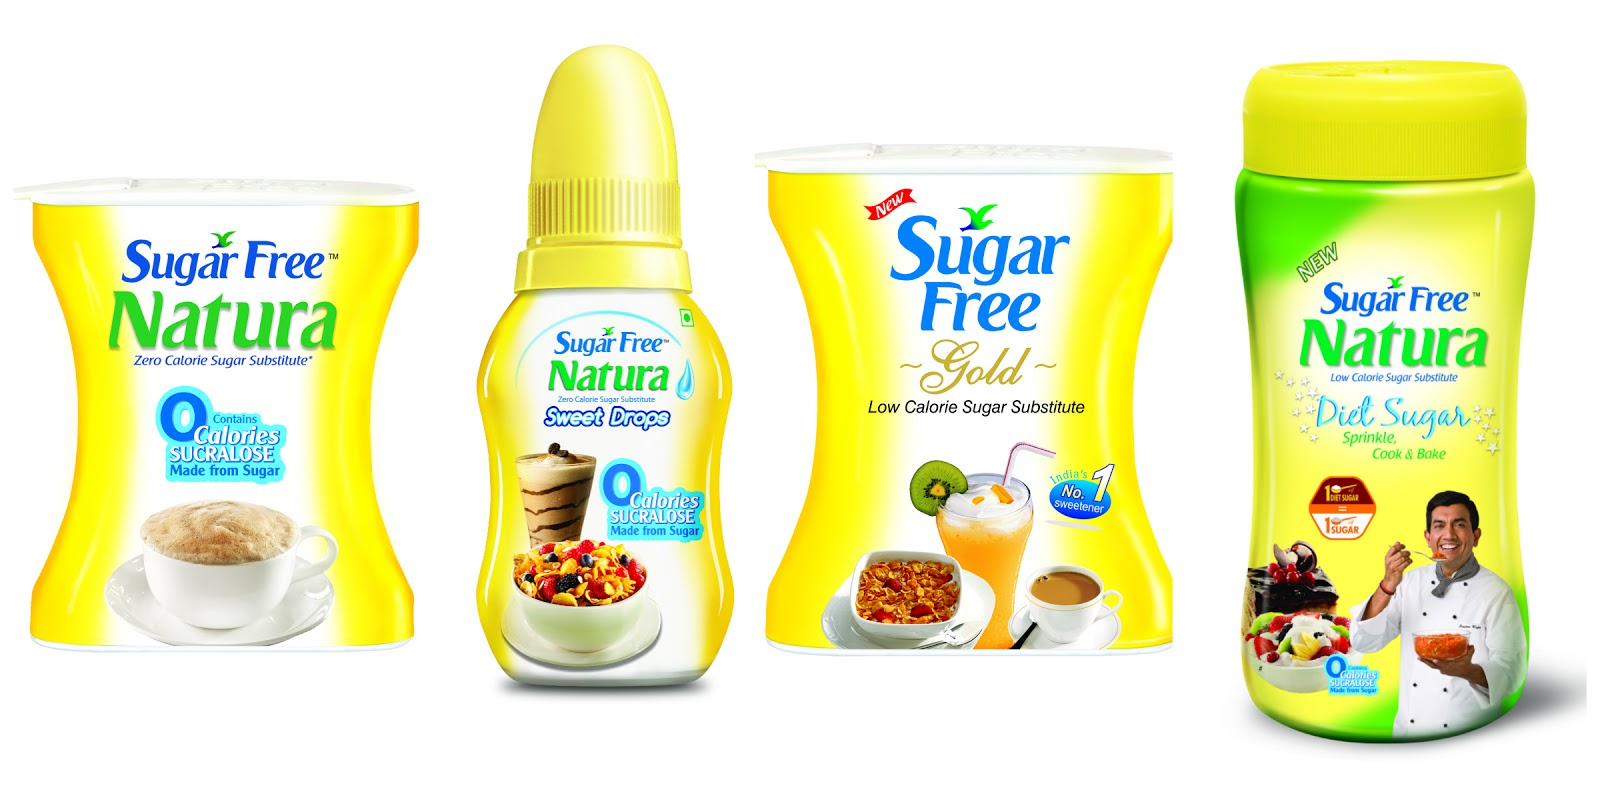 Non Toxic And Low Calorie Life Without Wanting To Let Go Of The Taste Feel Sugar You Know What Have Do Yes Opt For Free